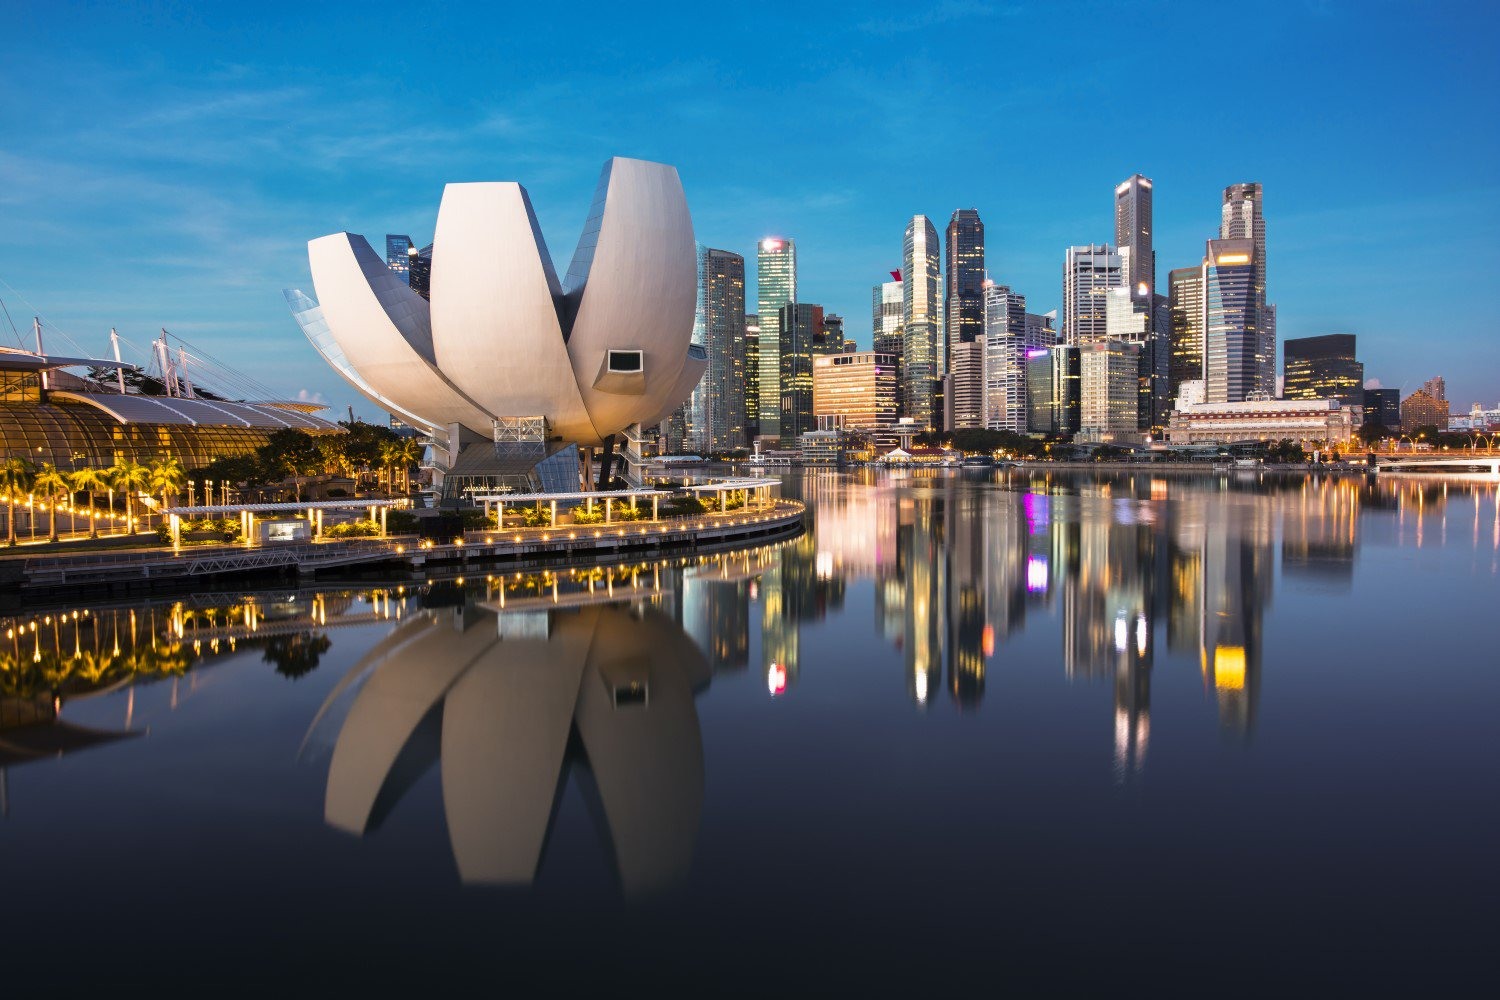 Singapore Warns 8 Exchanges Over Unregistered Securities Trading - CoinDesk